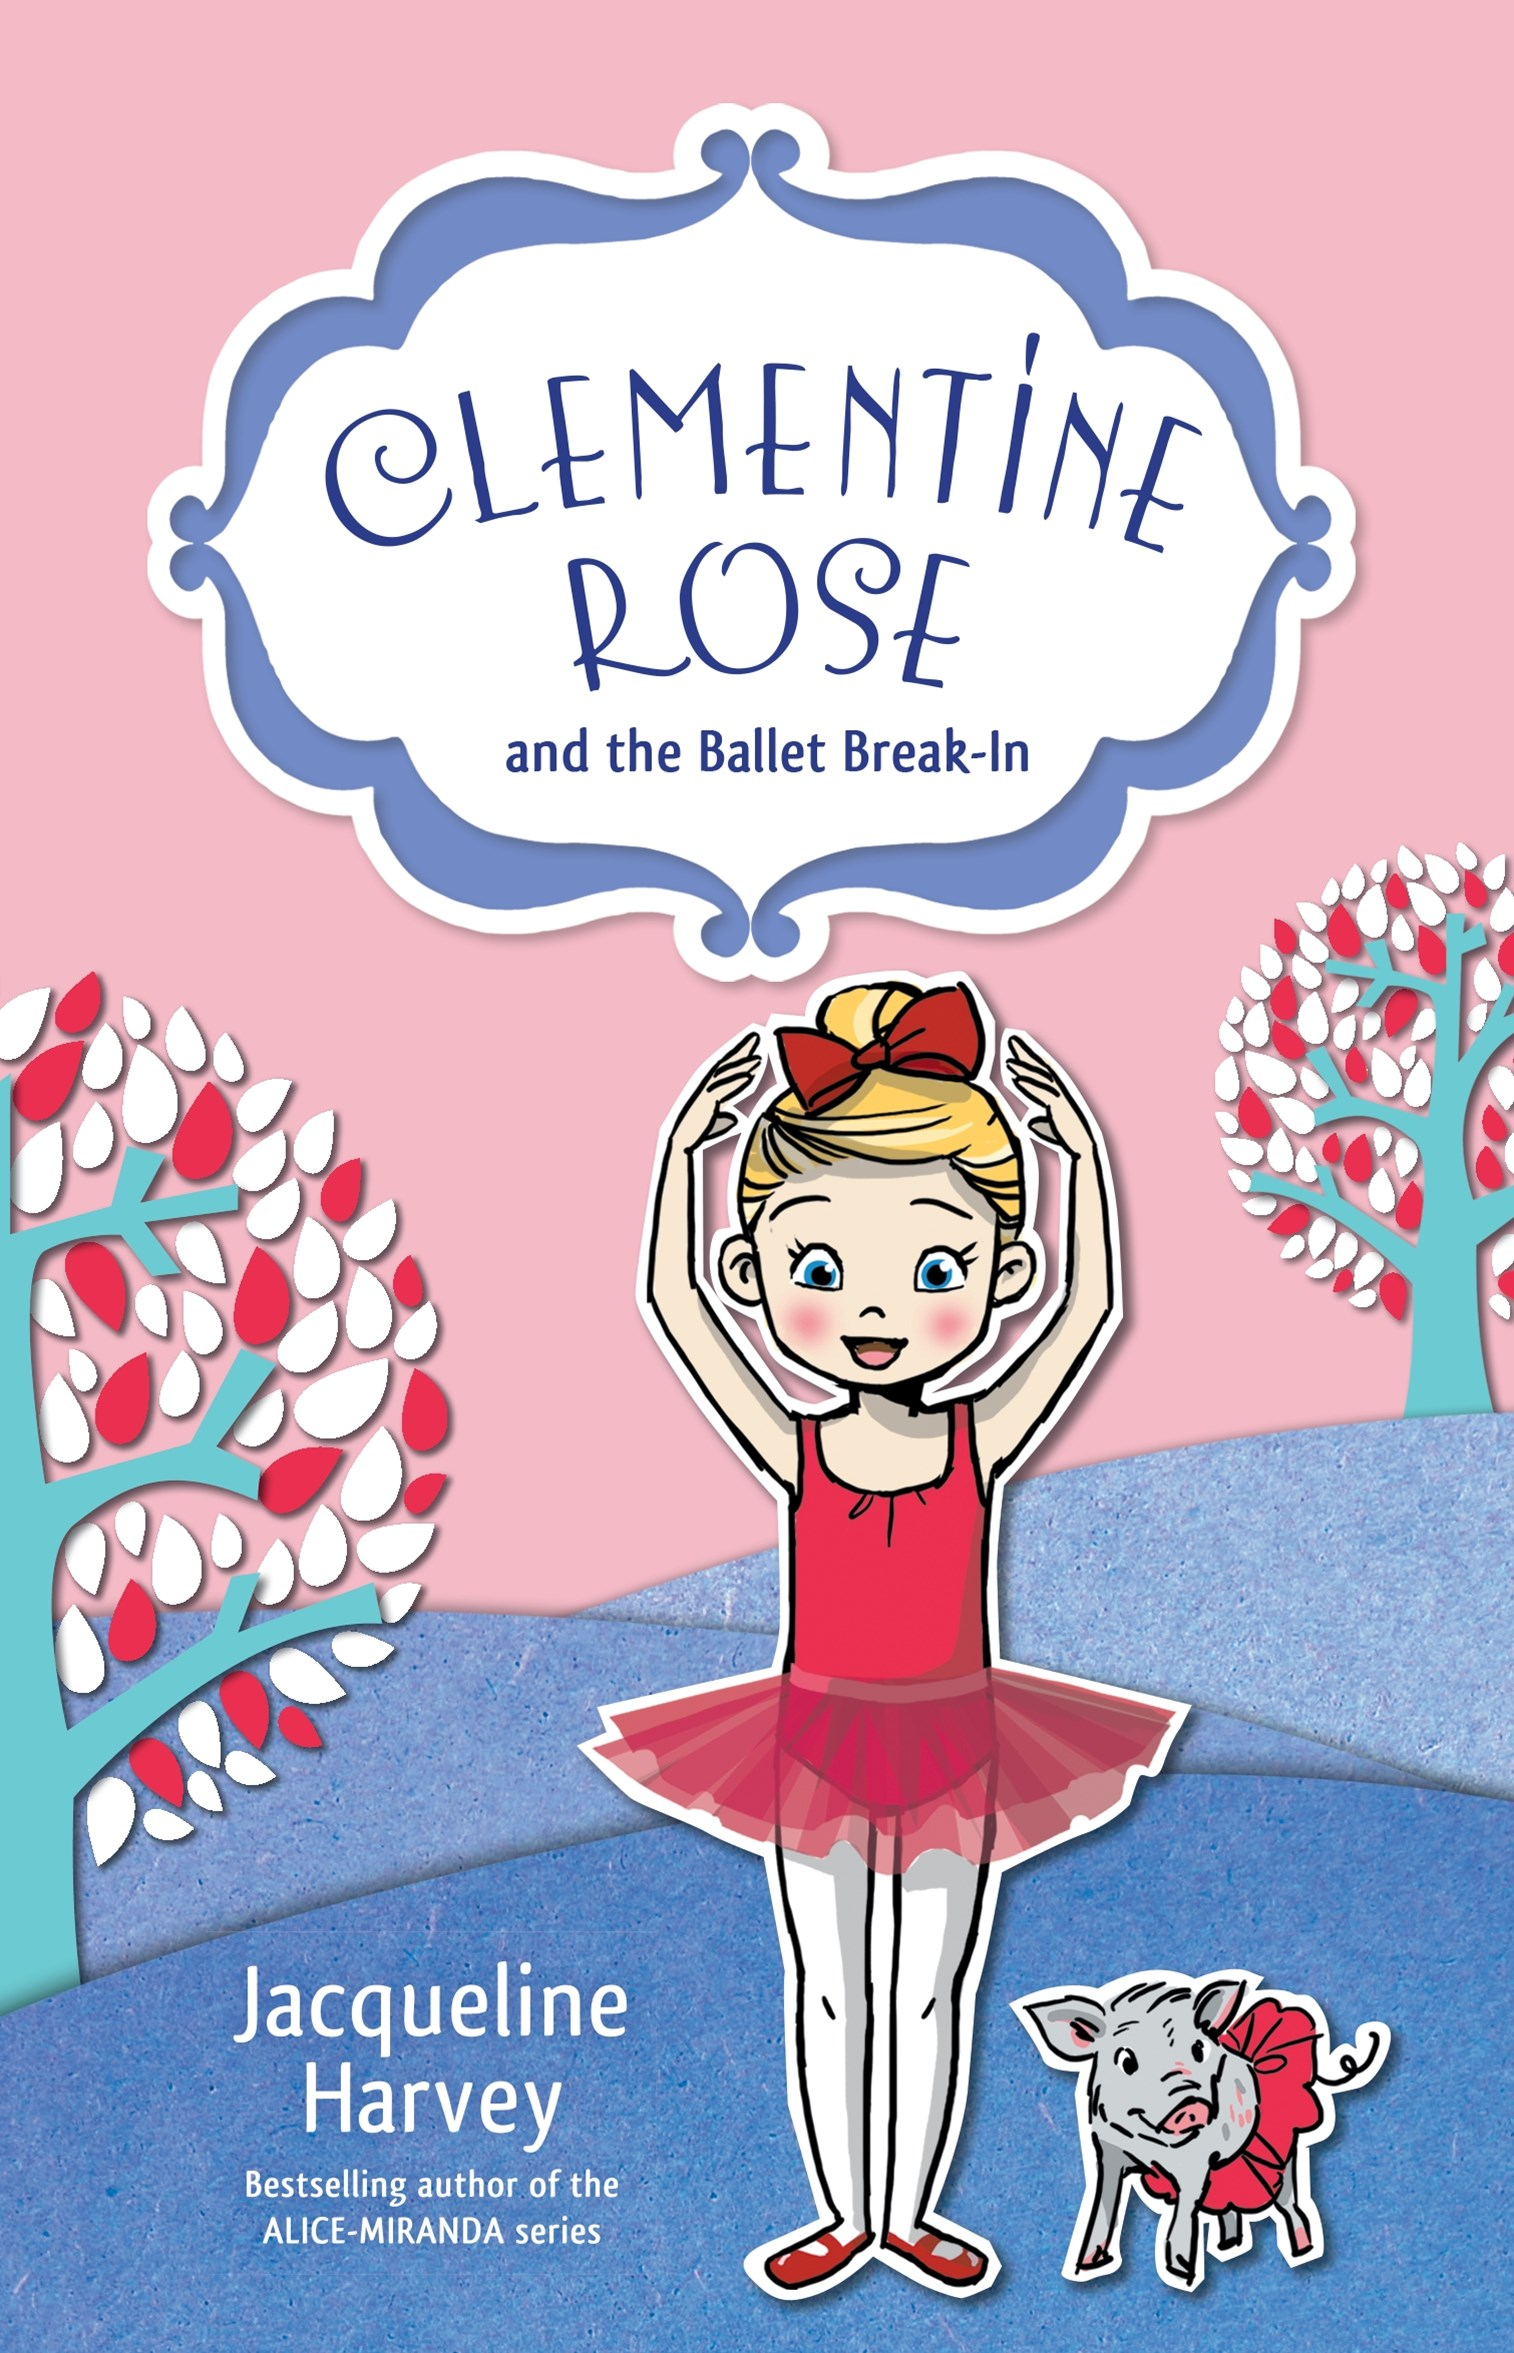 Clementine Rose and the Ballet Break-In (Clementine Rose Book 8)